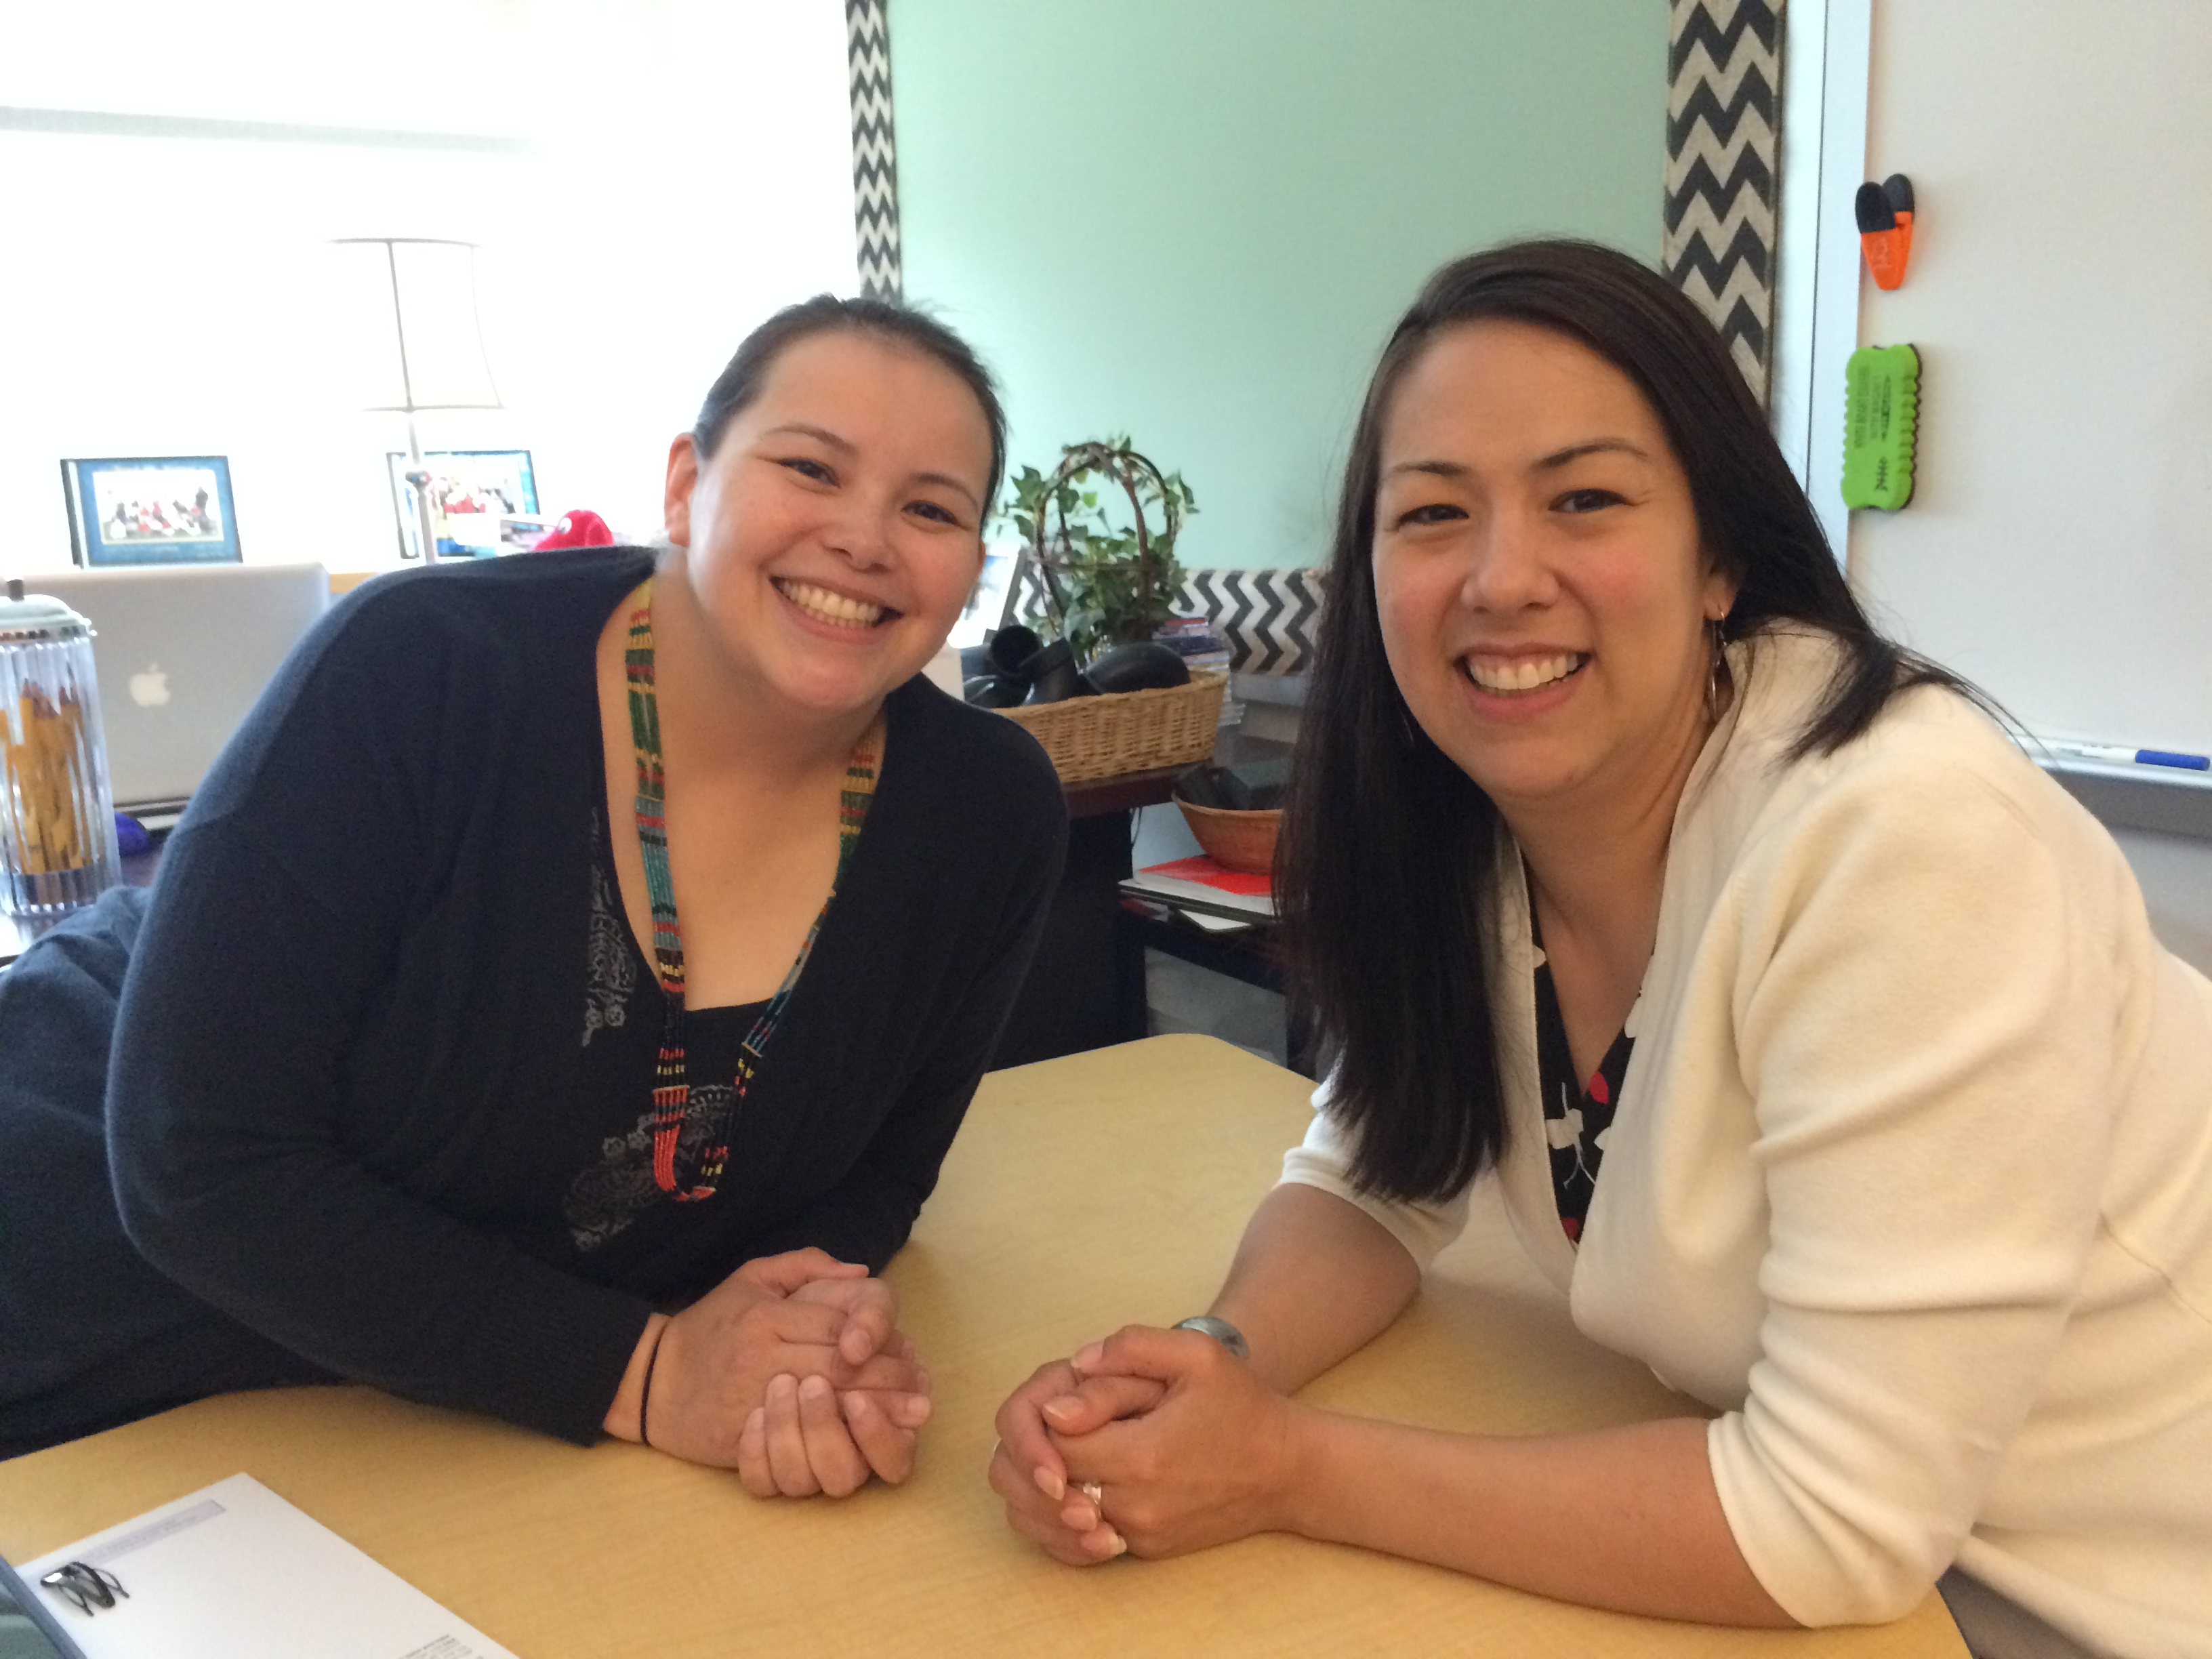 Jessica Chester (left) is a Tlingit language specialist that works in Eddy's classroom. Shgen George has been with the program since 2002 and teaches a combination fourth- and fifth-grade class. (Photo by Scott Burton/KTOO)